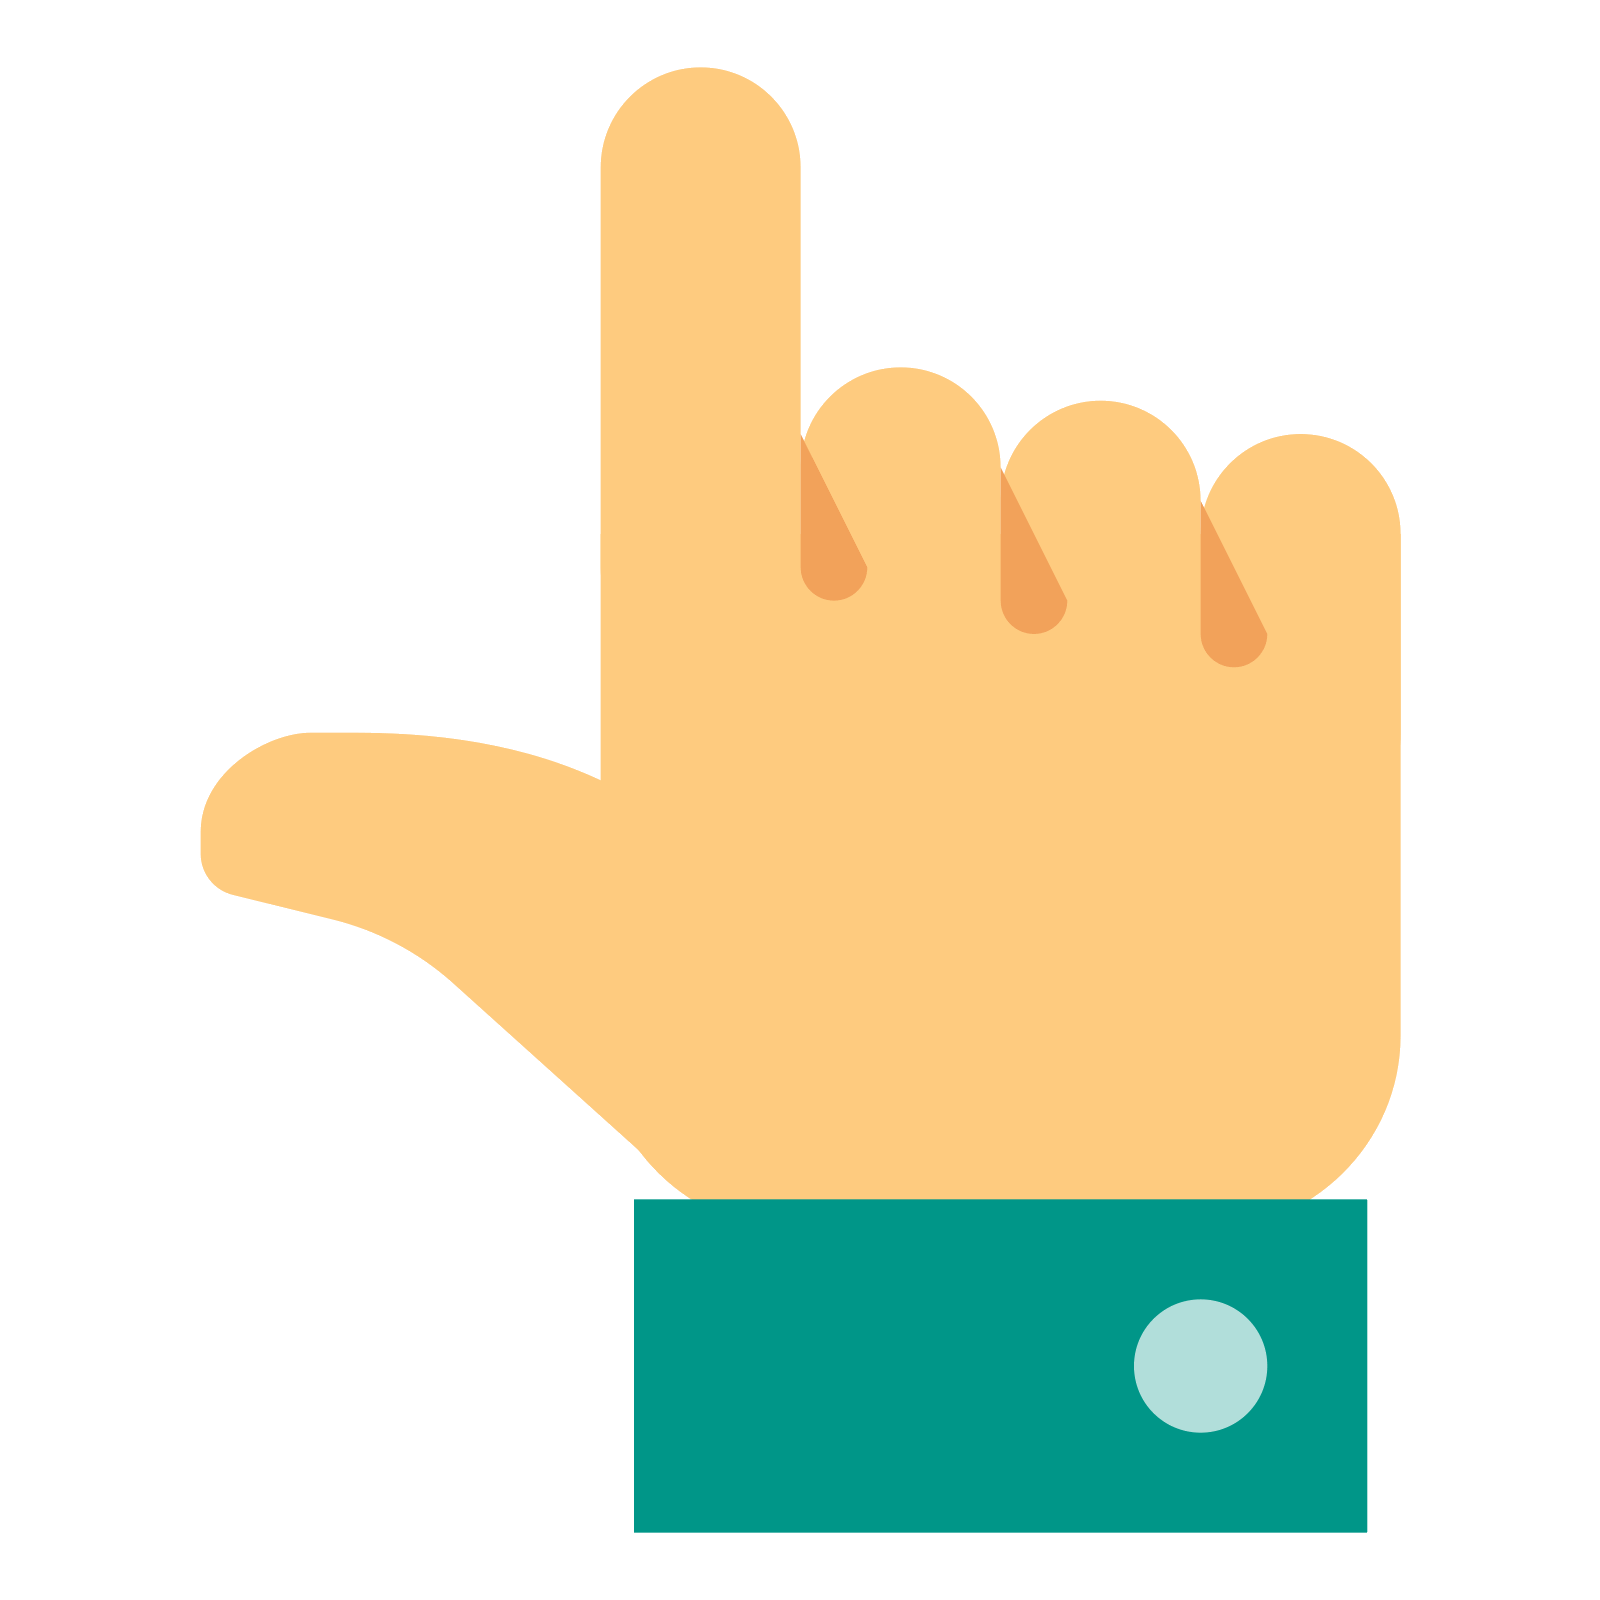 Hand icon png. Up free download and